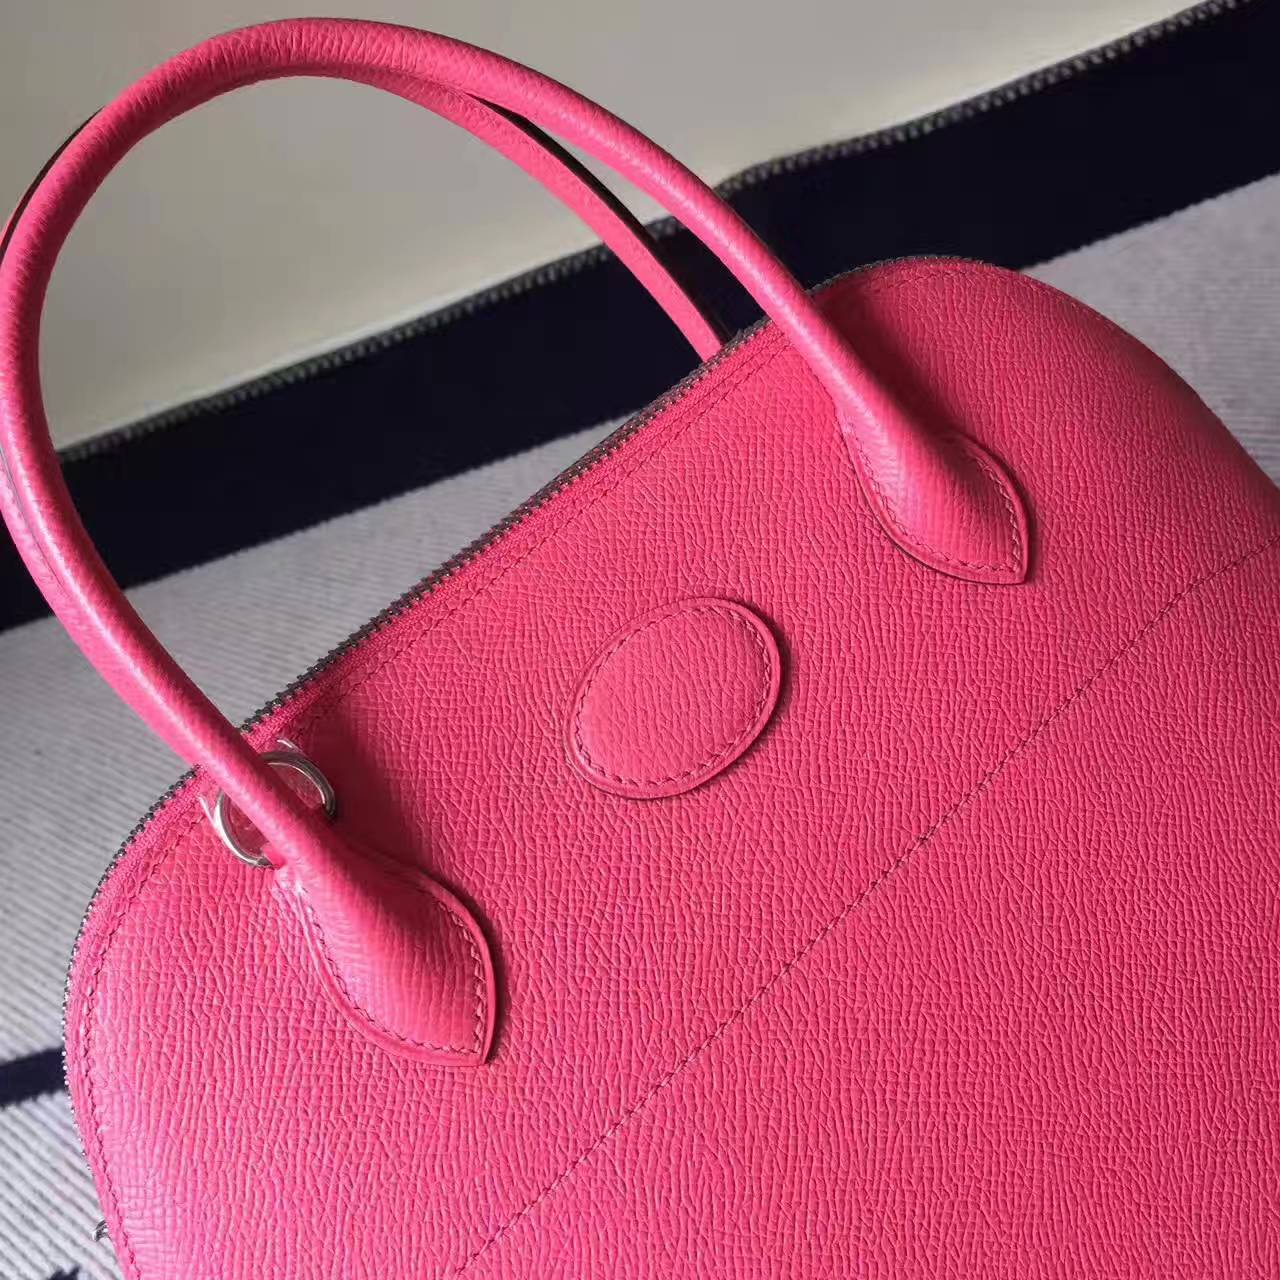 Discount Hermes 8W Rose Azalee Epsom Leather Bolide Tote Bag 27cm